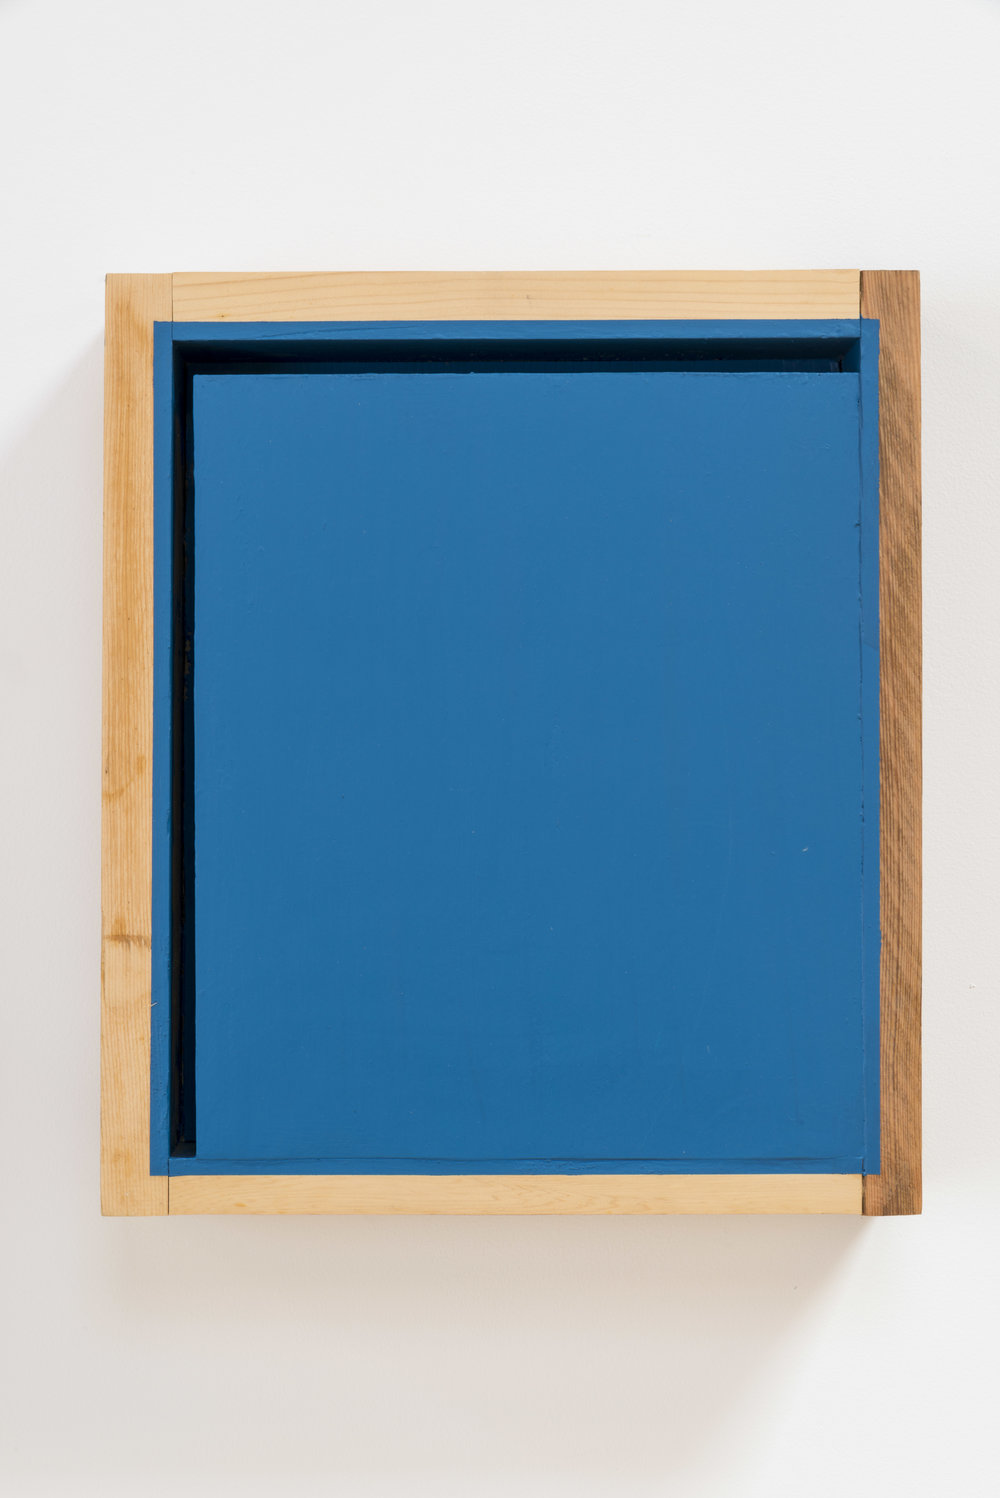 Space in Edges , 2006 短空端 ( Tankūtan ) Wood, acrylic 16 1/8 x 13 3/4 x 4 1/8 inches 41 x 35 x 10.5 cm